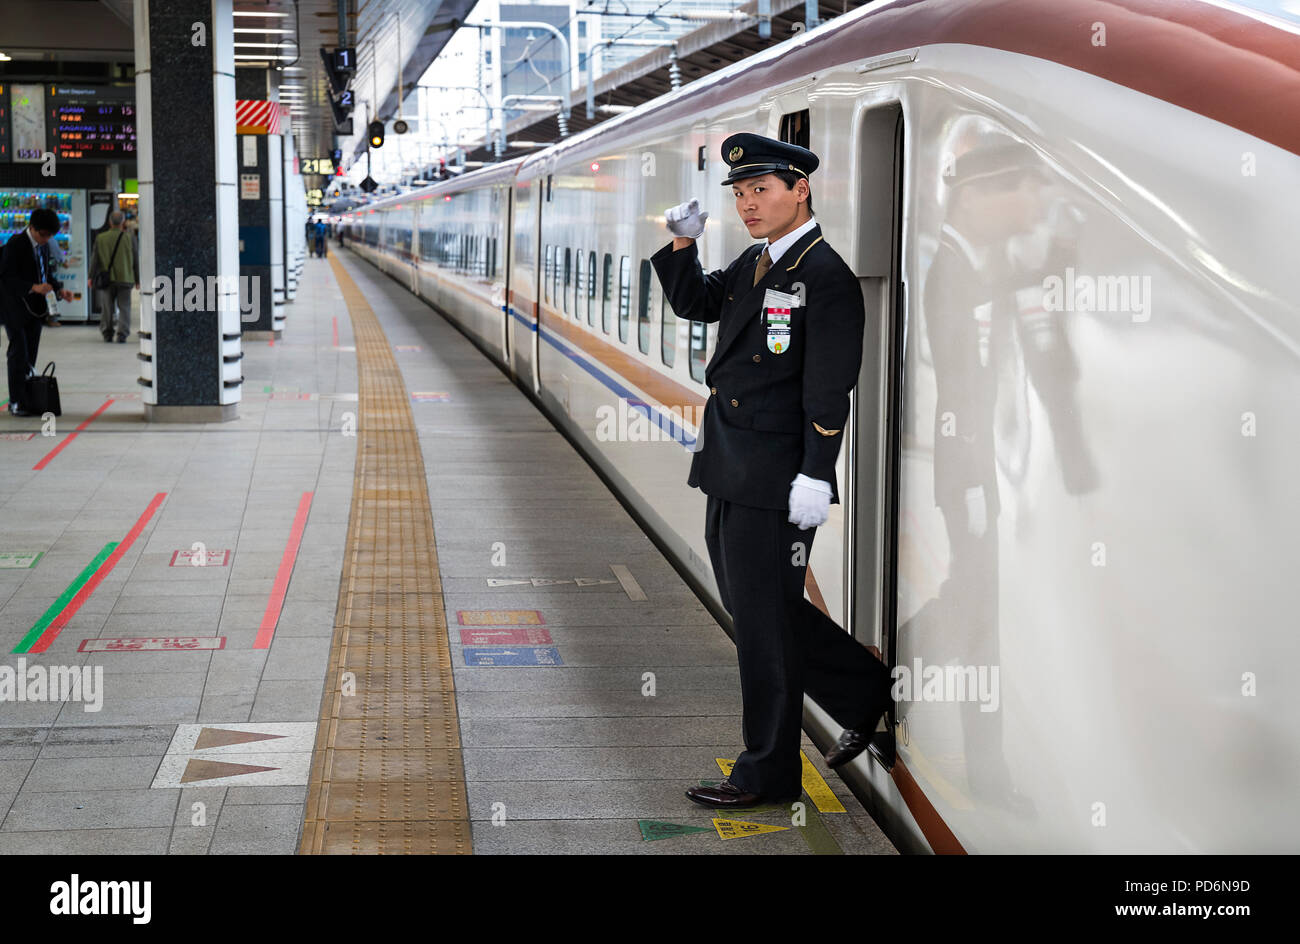 Japan, Honshu island, Kanto, Tokyo, by the central railway station of Tokyo, rapid train, Shinkansen. - Stock Image